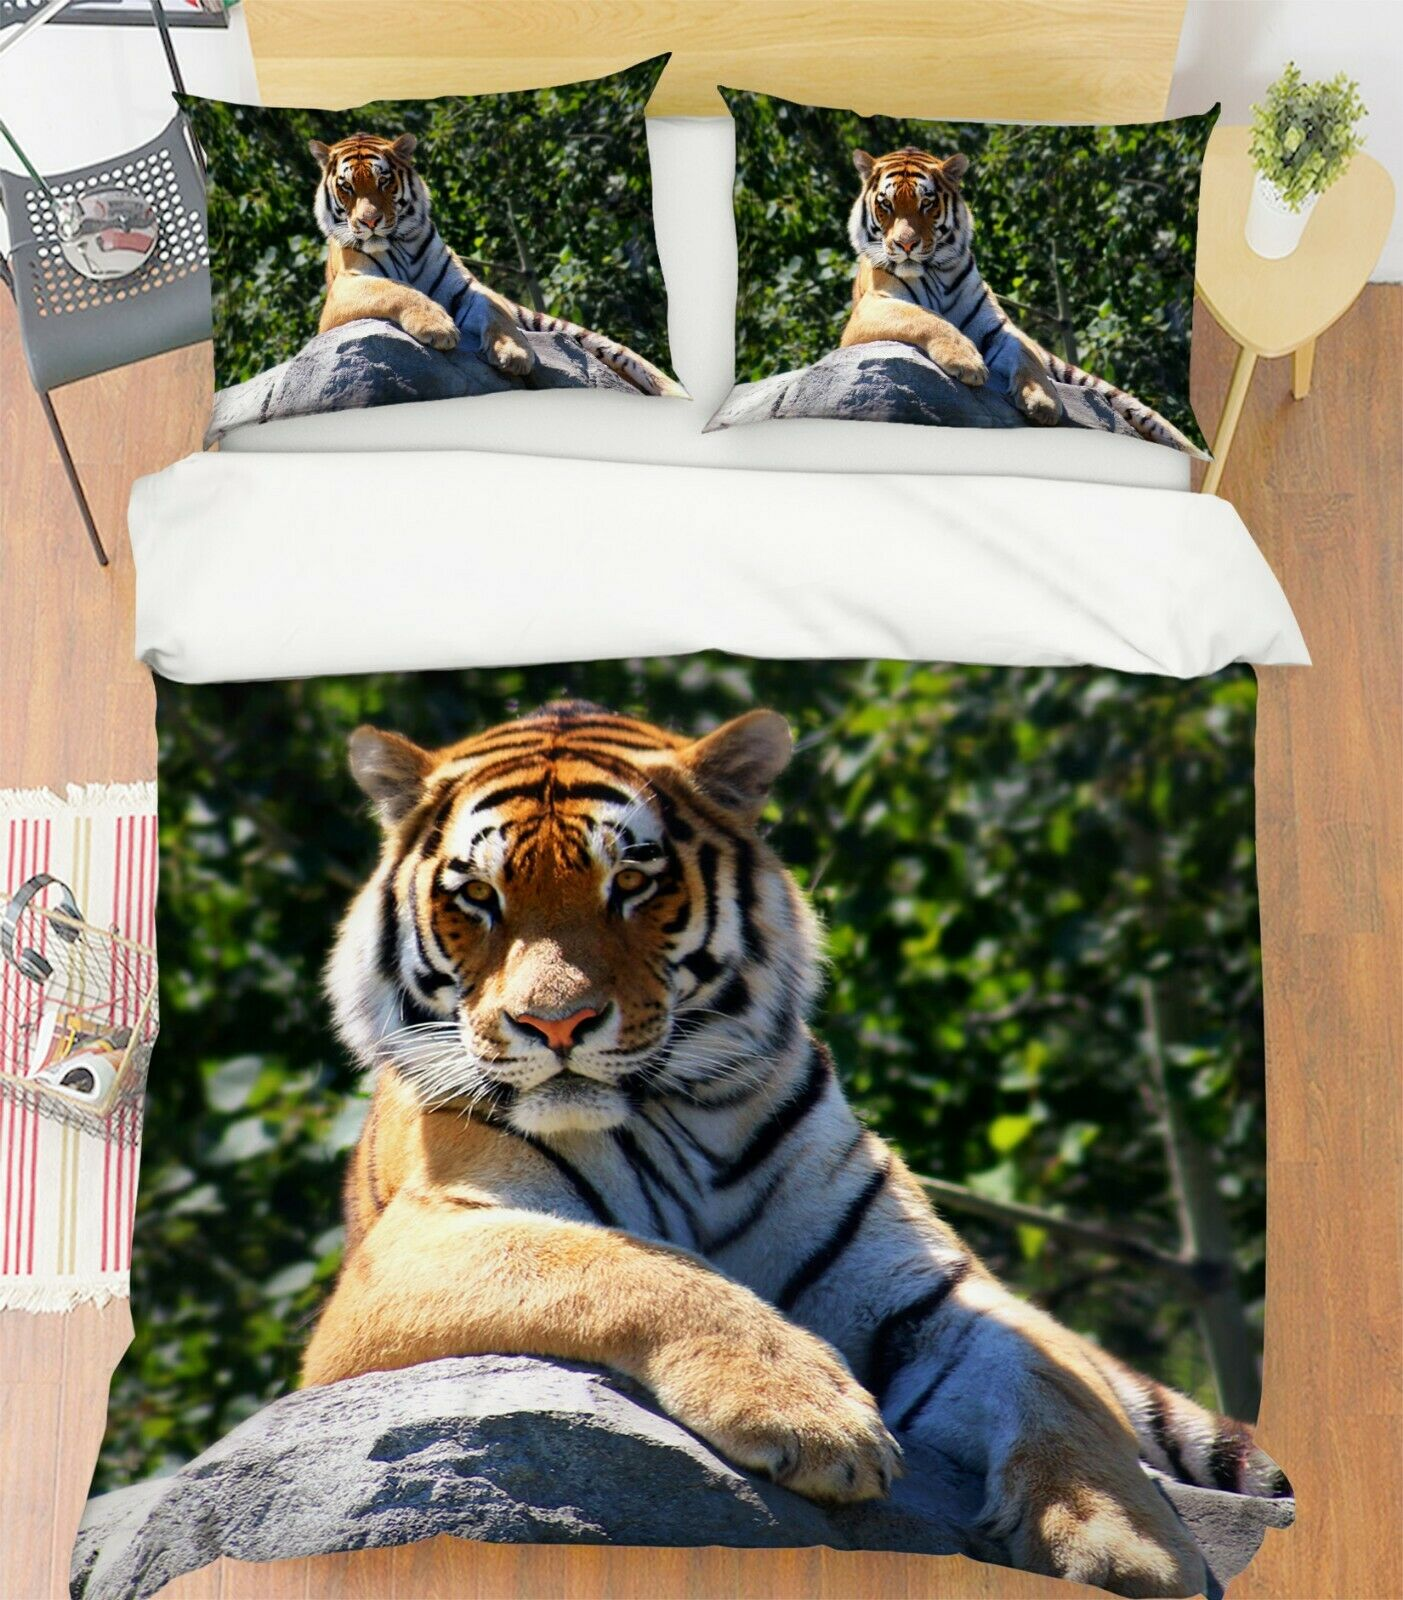 3D Forest Stone Tiger P07 Animal Bed Pillowcases Quilt Duvet Cover Set Queen Zoe